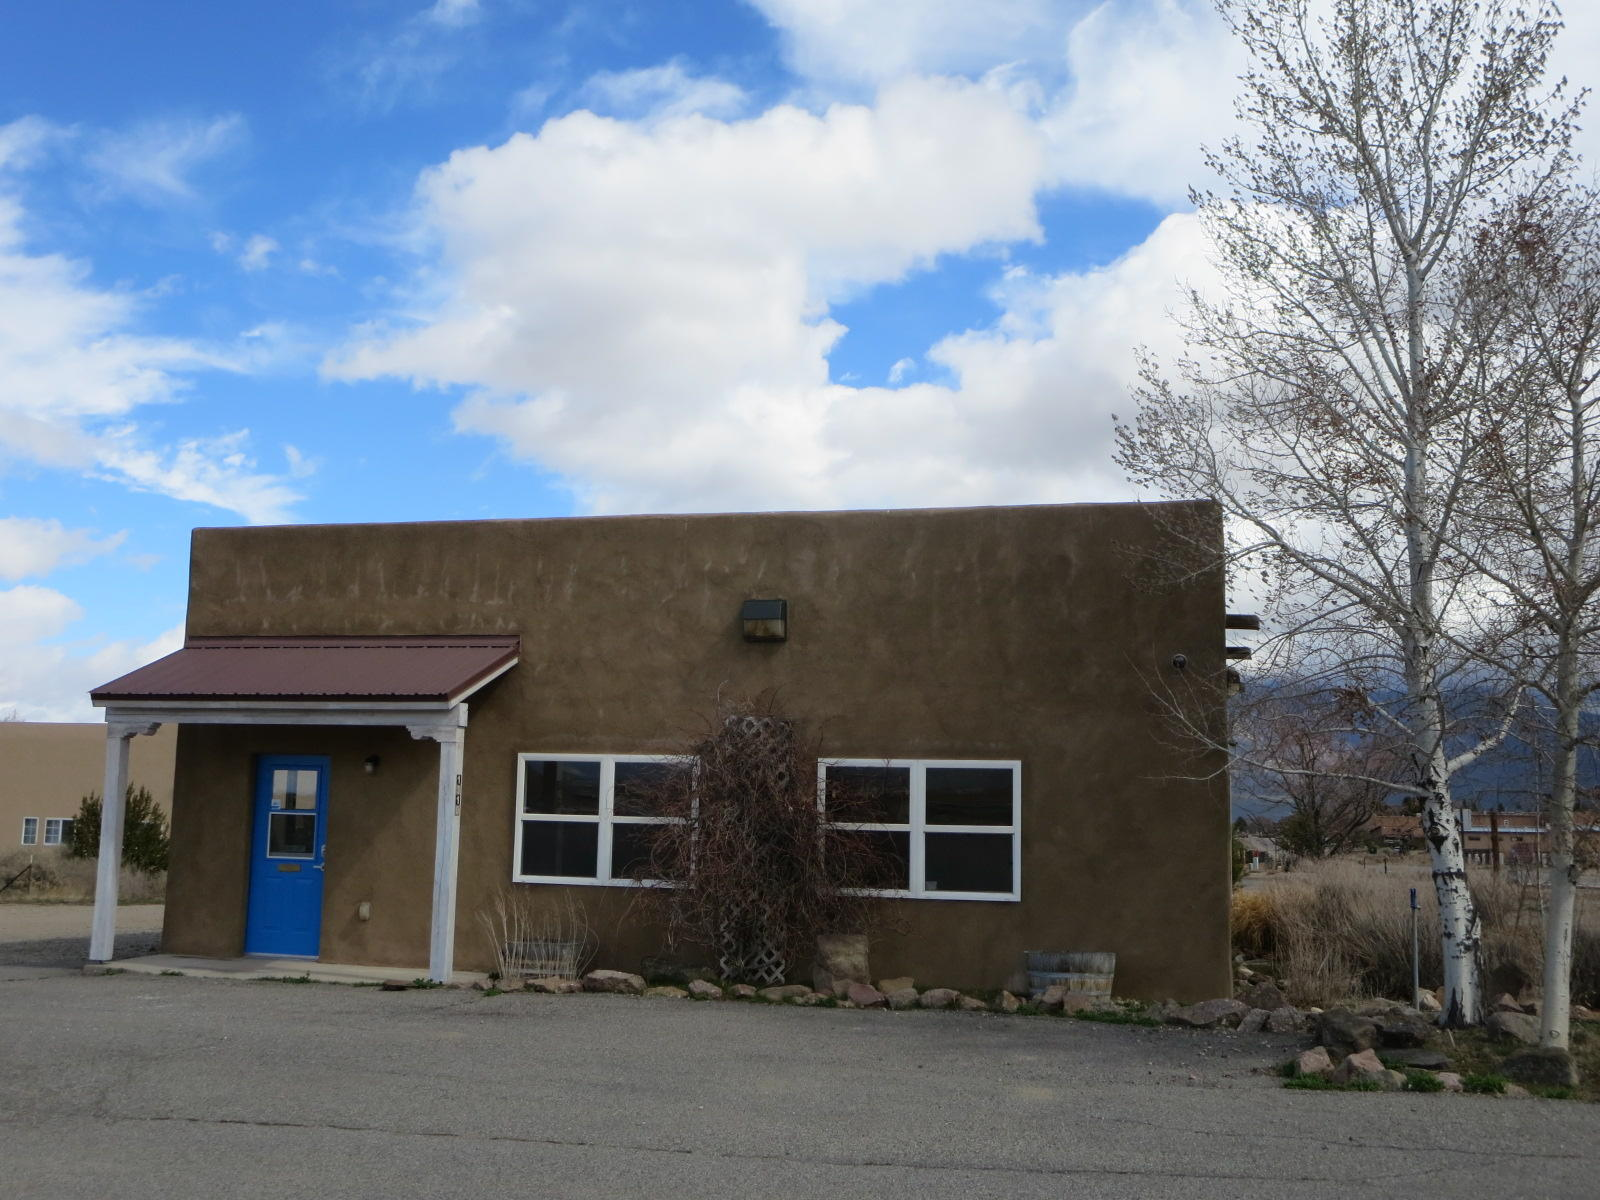 1310 Gusdorf Road, Taos, NM 87571 - Taos, NM real estate listing